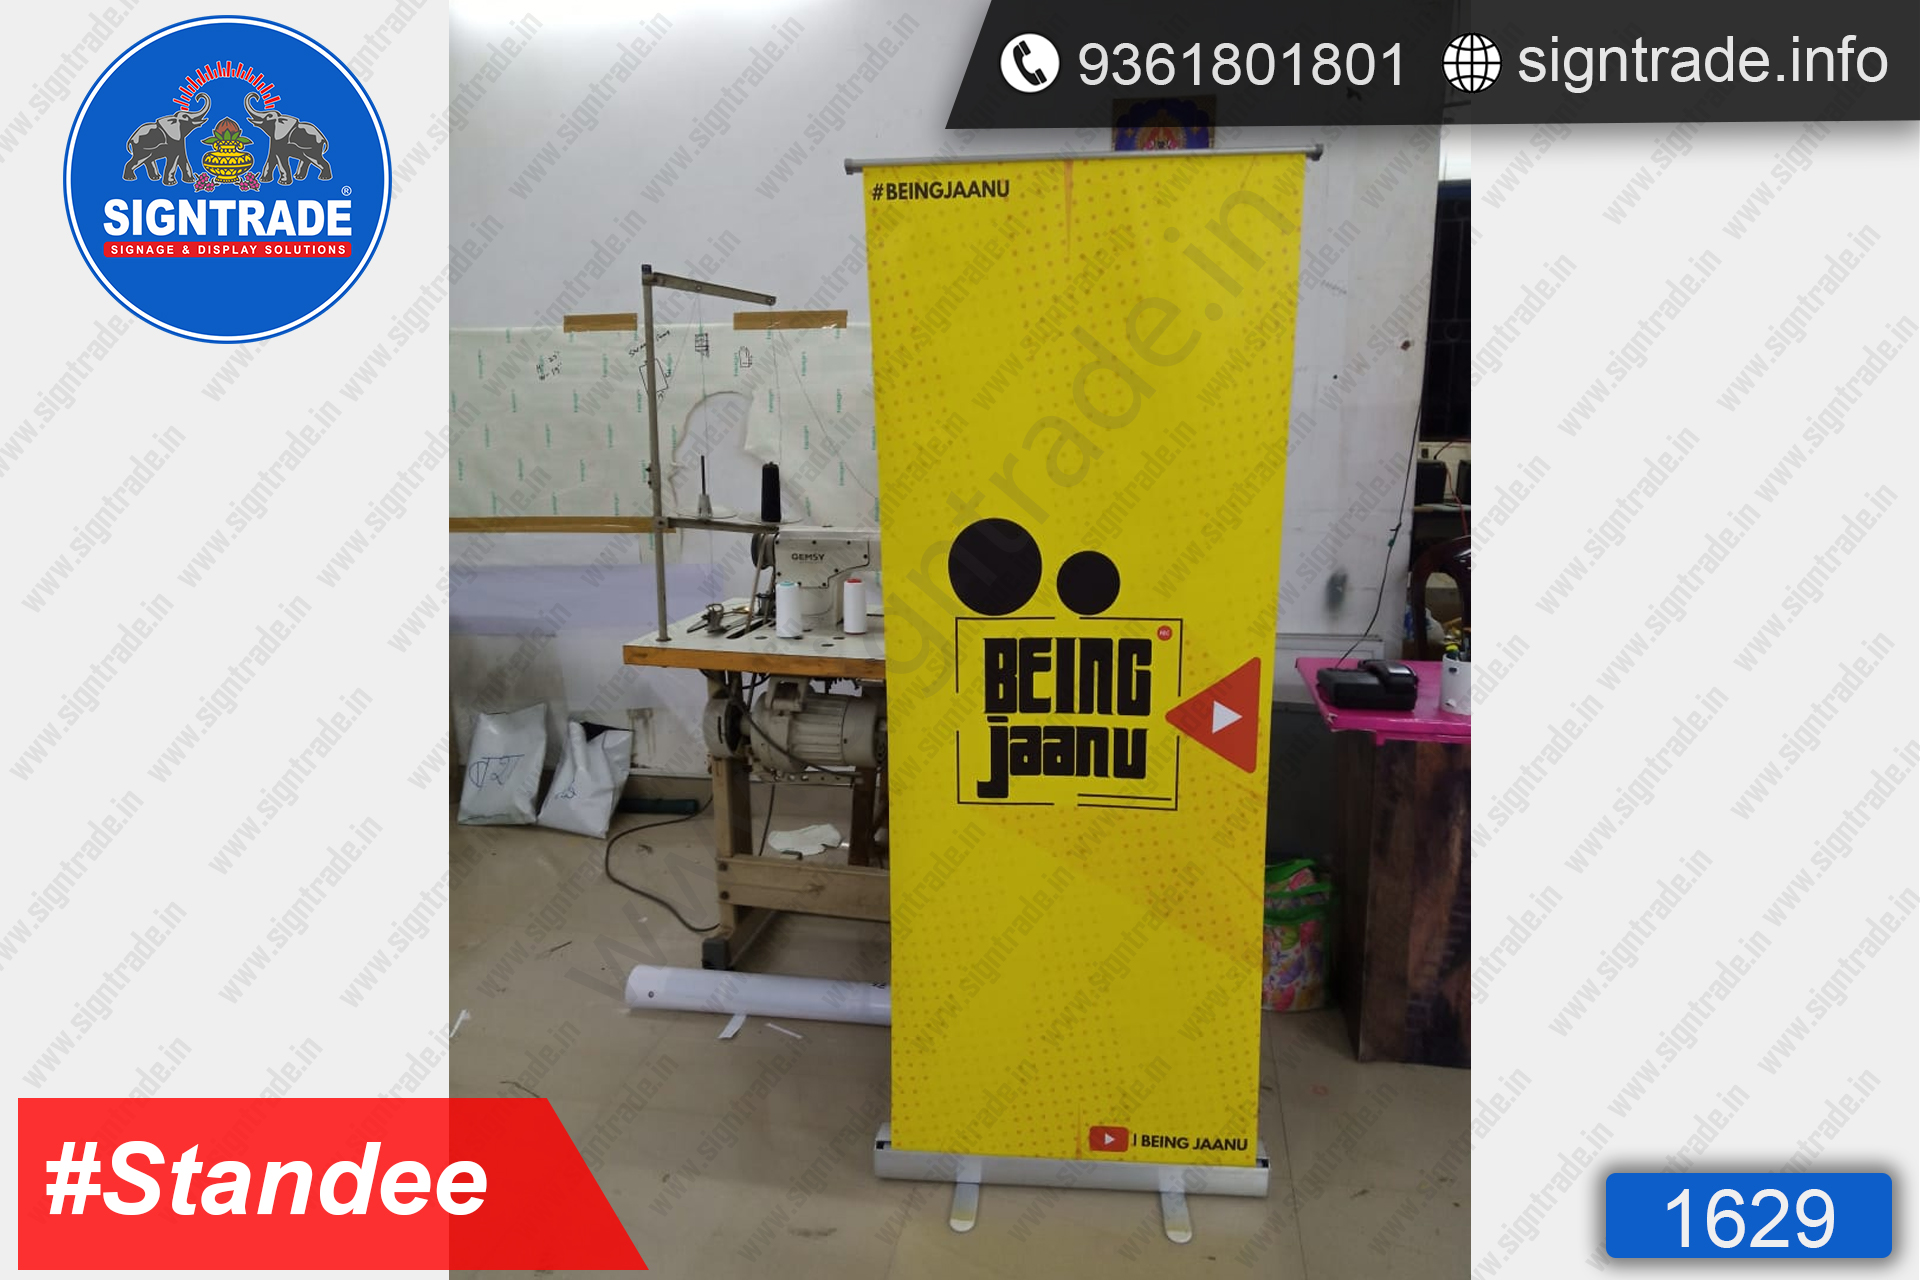 Being Jaanu - Rollup Banner Stand - SIGNTRADE - Rollup Banner Stand Manufactures in Chennai